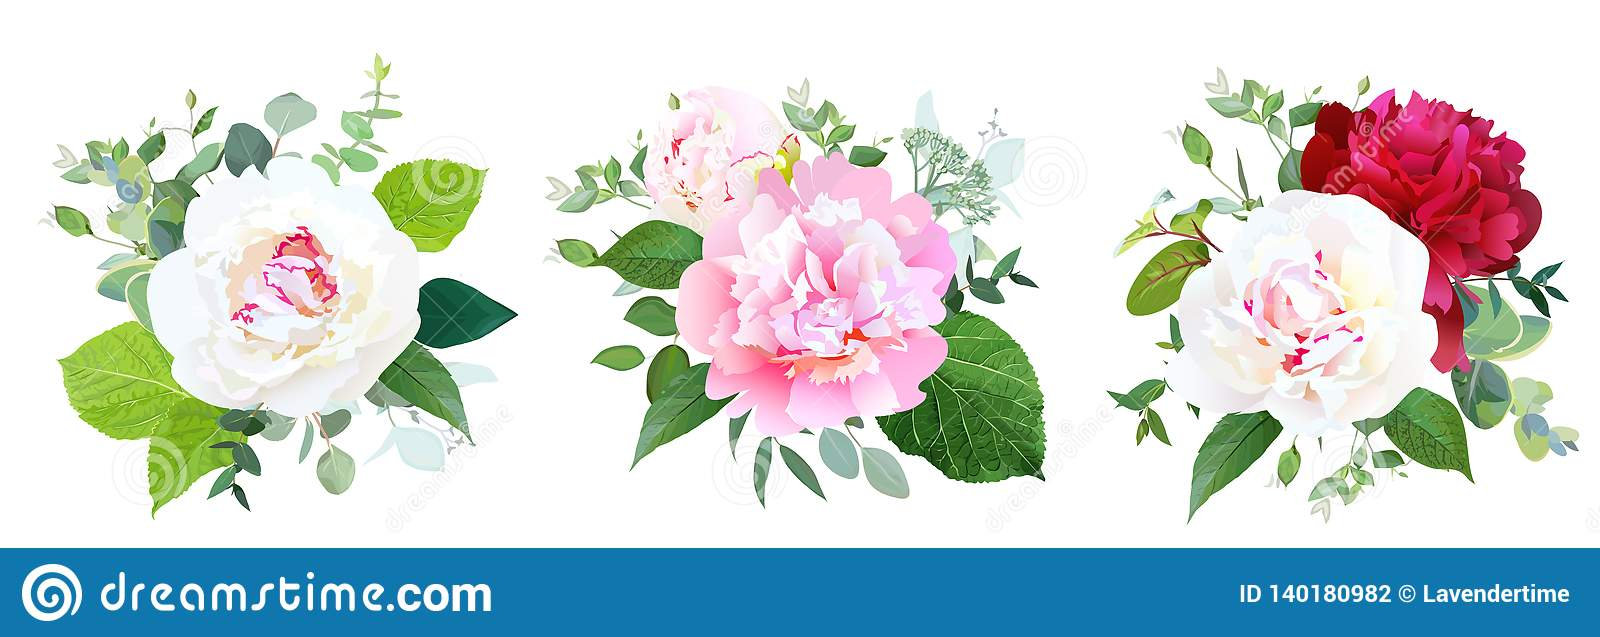 Peony Flowers And Greenery Vector Design Bridal Bouquets Stock Vector Illustration Of Garden Burgundy 140180982